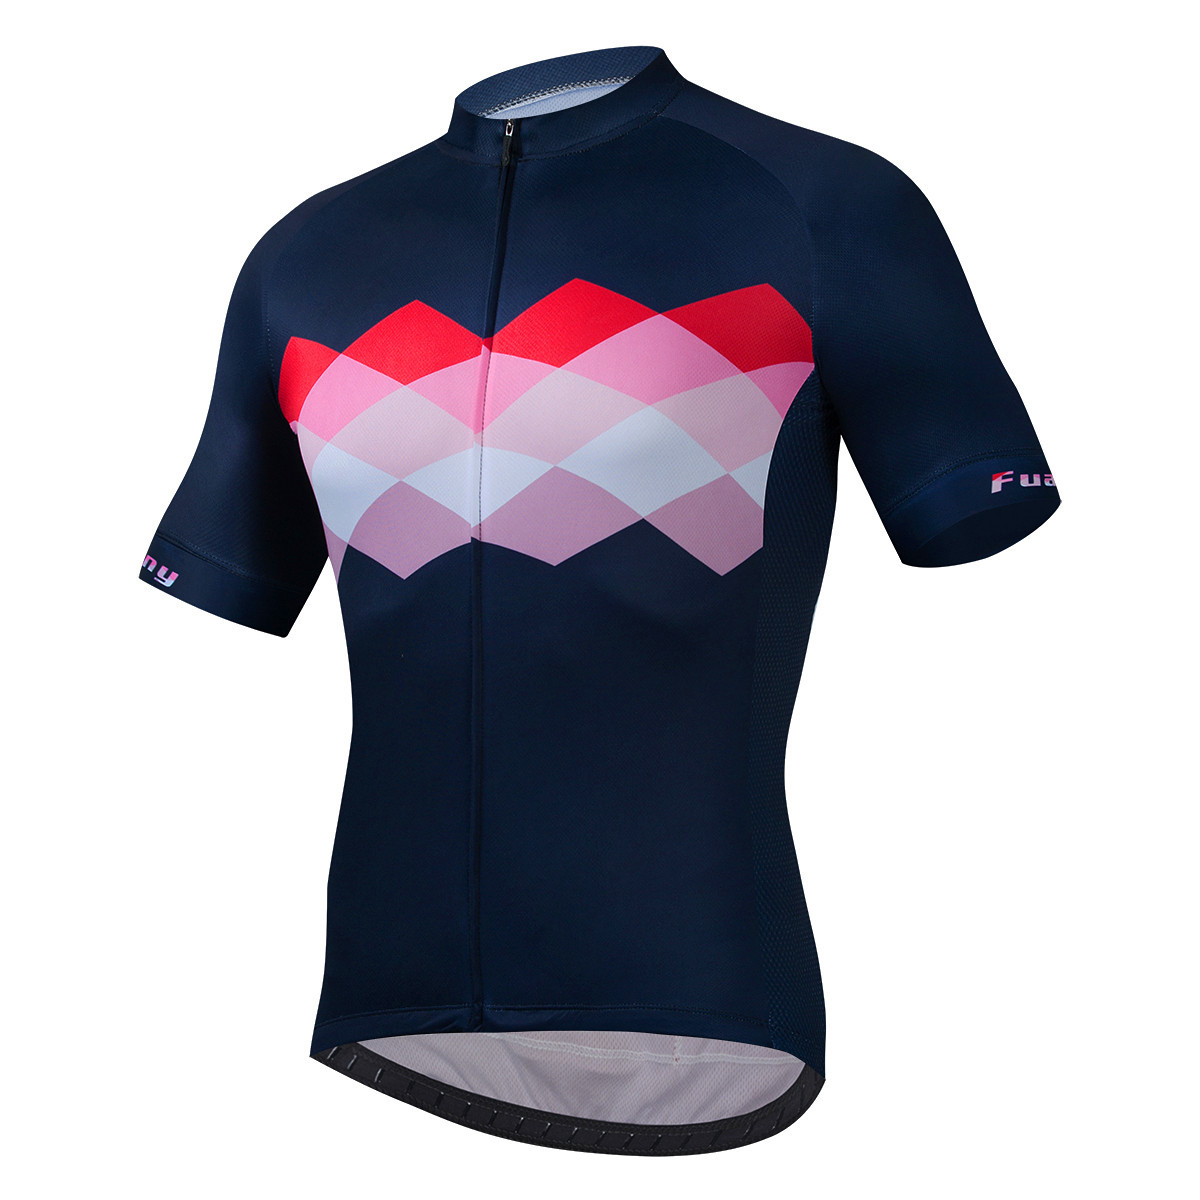 Fualrny Summer Bike Cycling Jersey Short Sleeve Men's Sunscreen Top Quick-drying Perspiration Cycli